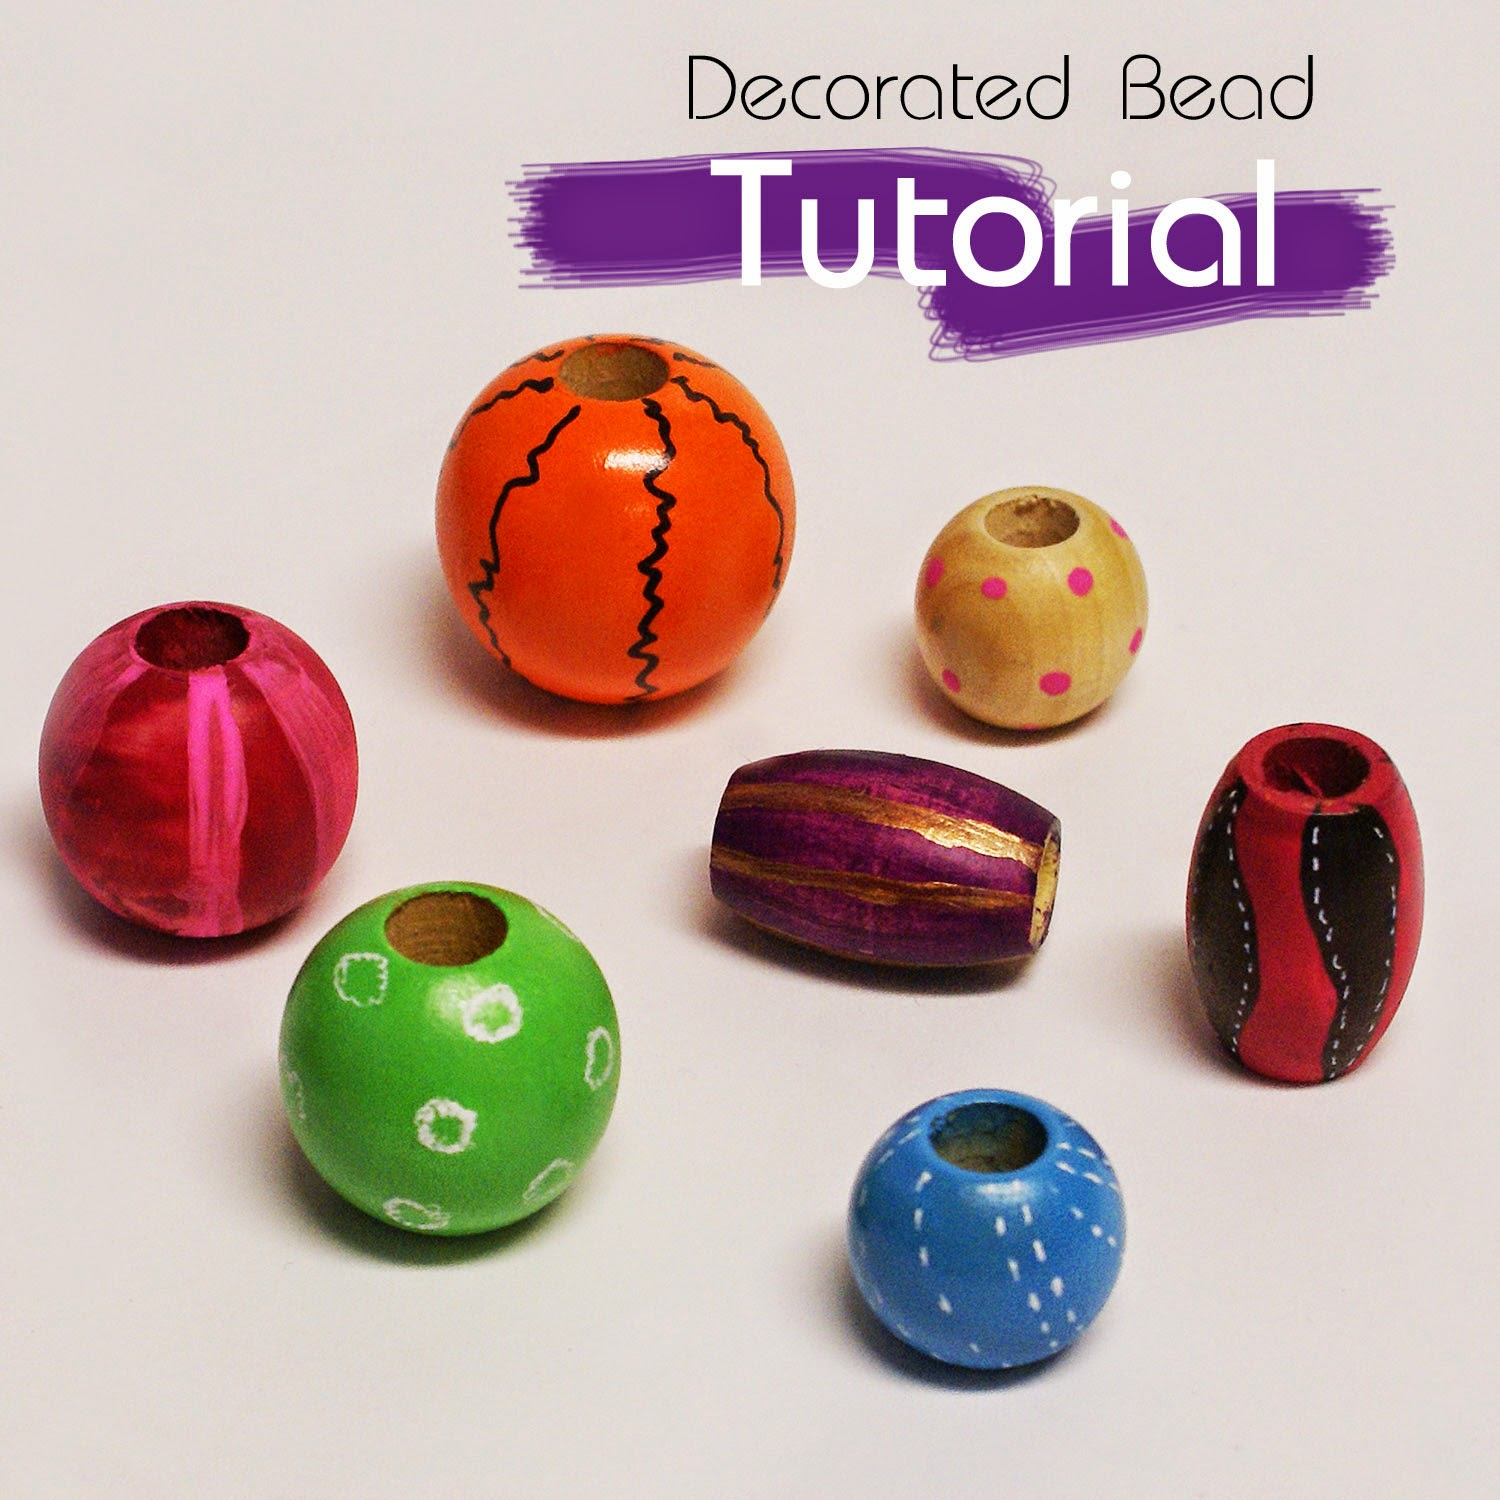 Bead decorating from Pepperell Braiding Company